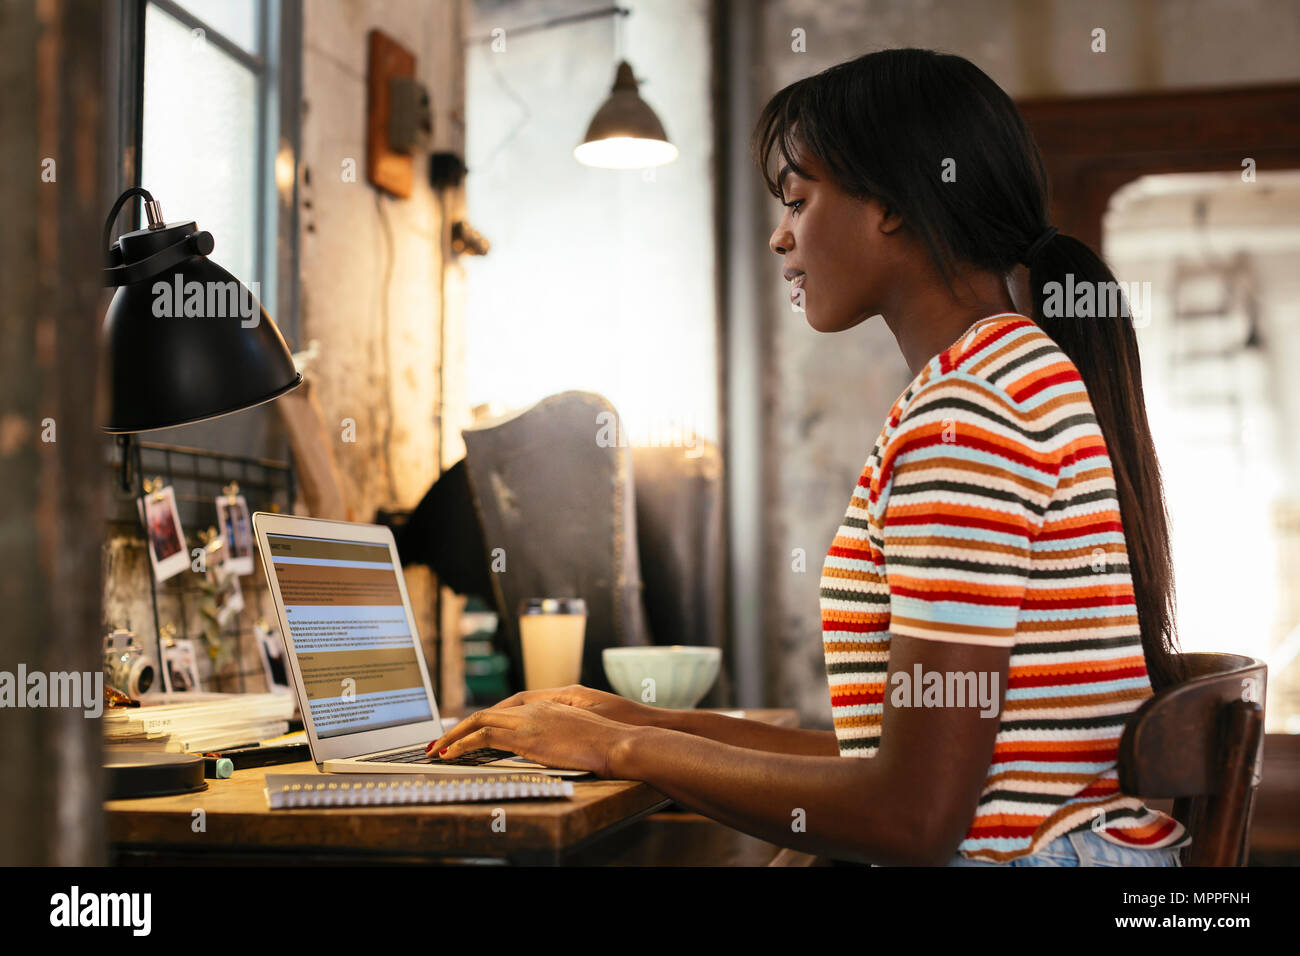 Young woman sitting at desk in a loft working on laptop - Stock Image